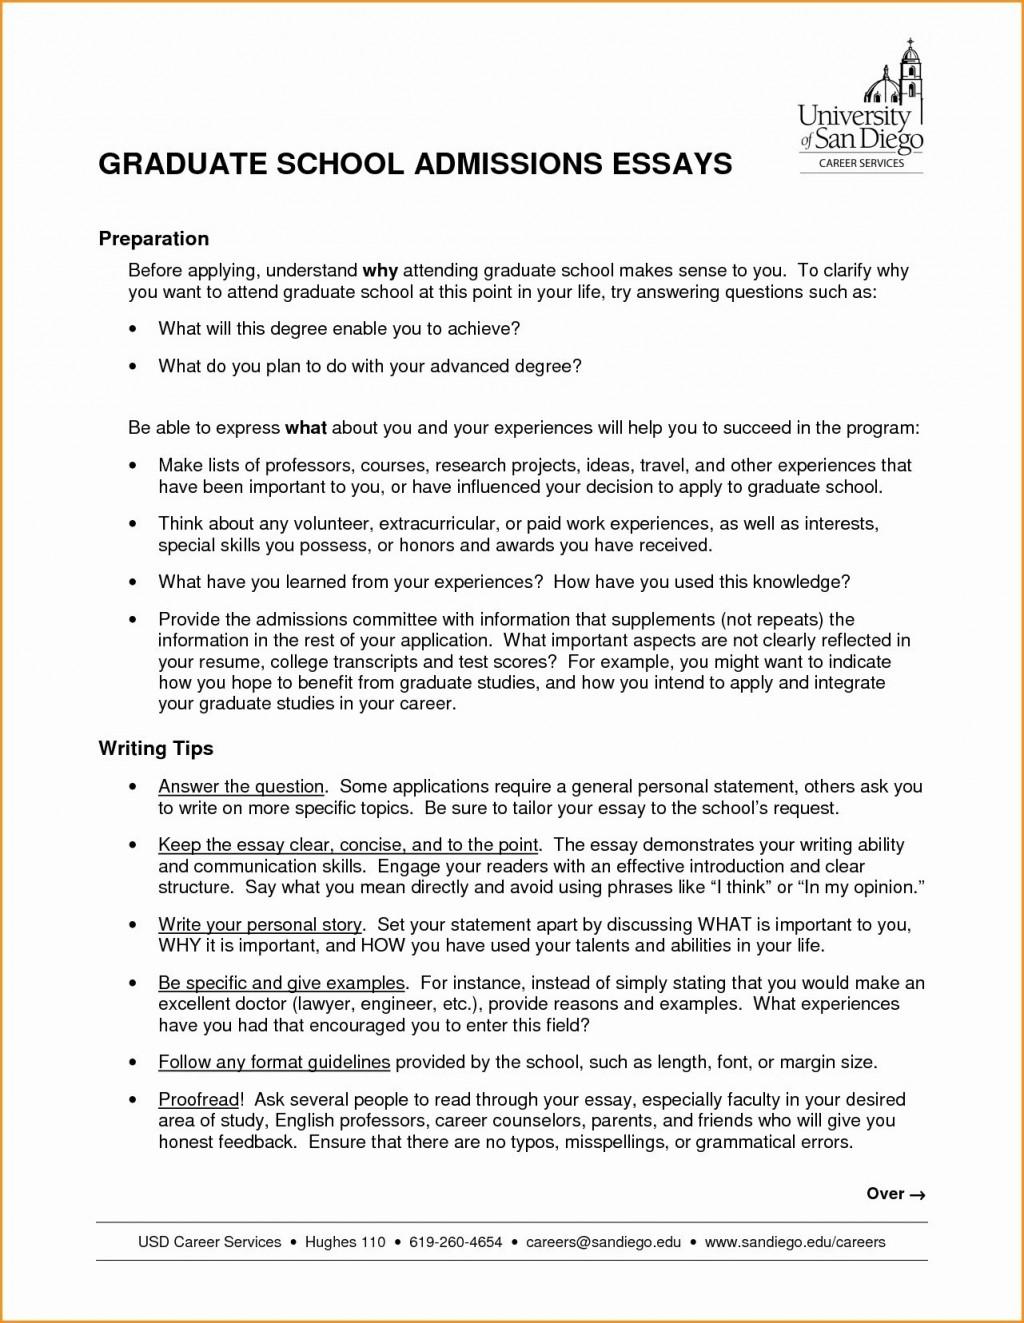 020 Essay Example Standard Format Writing Personal Latest Student Valid Elegant Recent Graduate Cover Letter Impressive For College Apa Essay/report Ielts Large